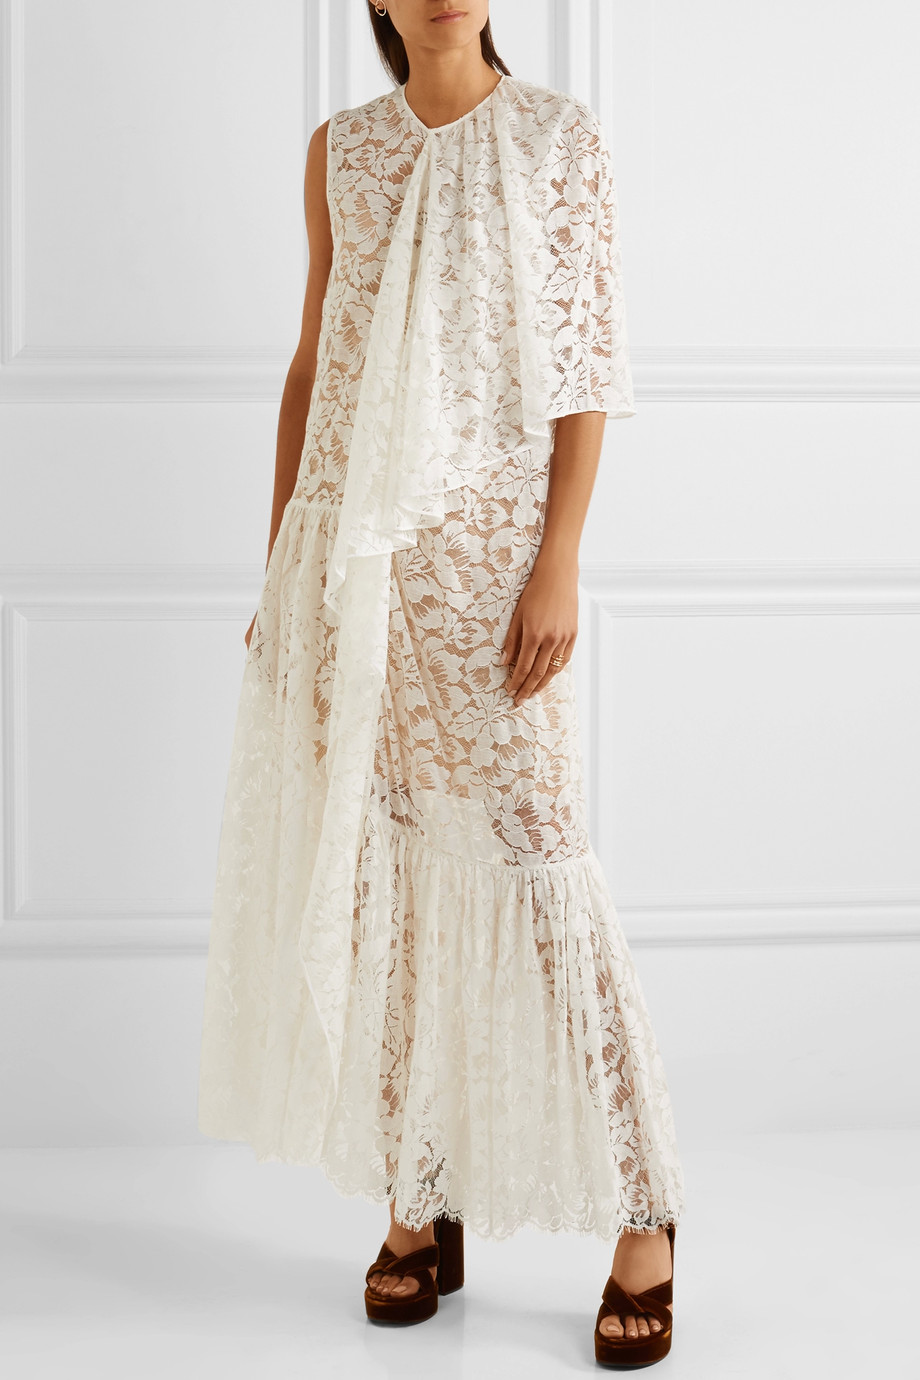 STELLA MCCARTNEY Elen one-shoulder draped cotton-blend lace gown, 4th of July 2017 outfit picks by KOKET 4th of july outfit Chic 4th of July Outfit Ideas by KOKET 899669 fr xl